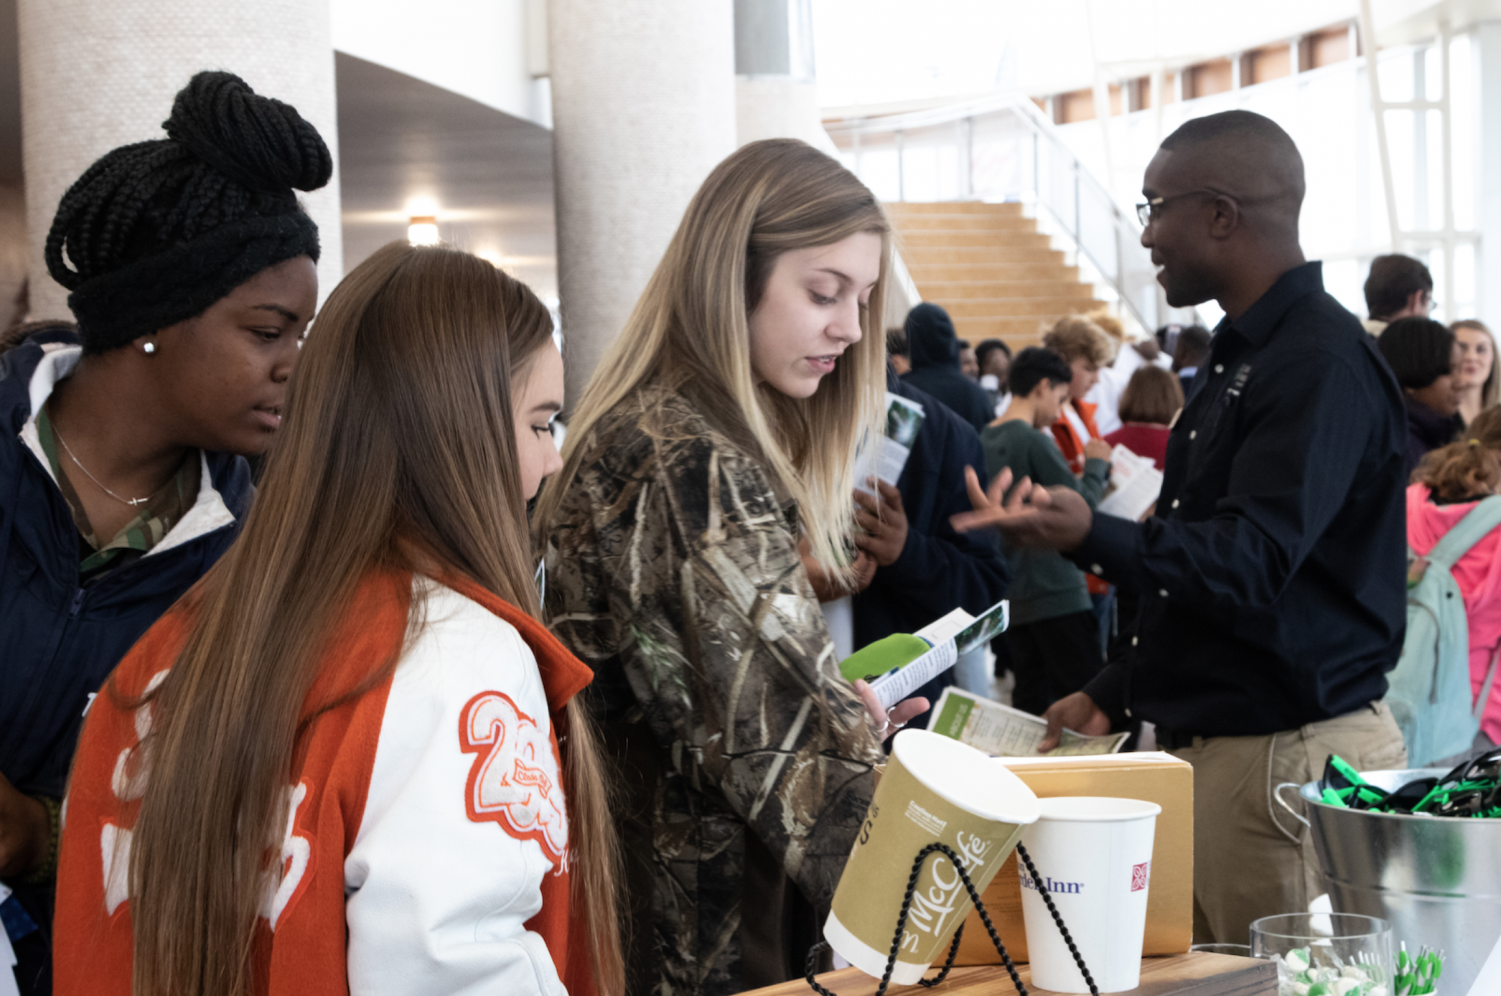 Seniors Elaina Roberson and Kylee Spriggs observe brochures during the career fair last week. The fair attracted various students looking for local job opportunities in Texarkana.